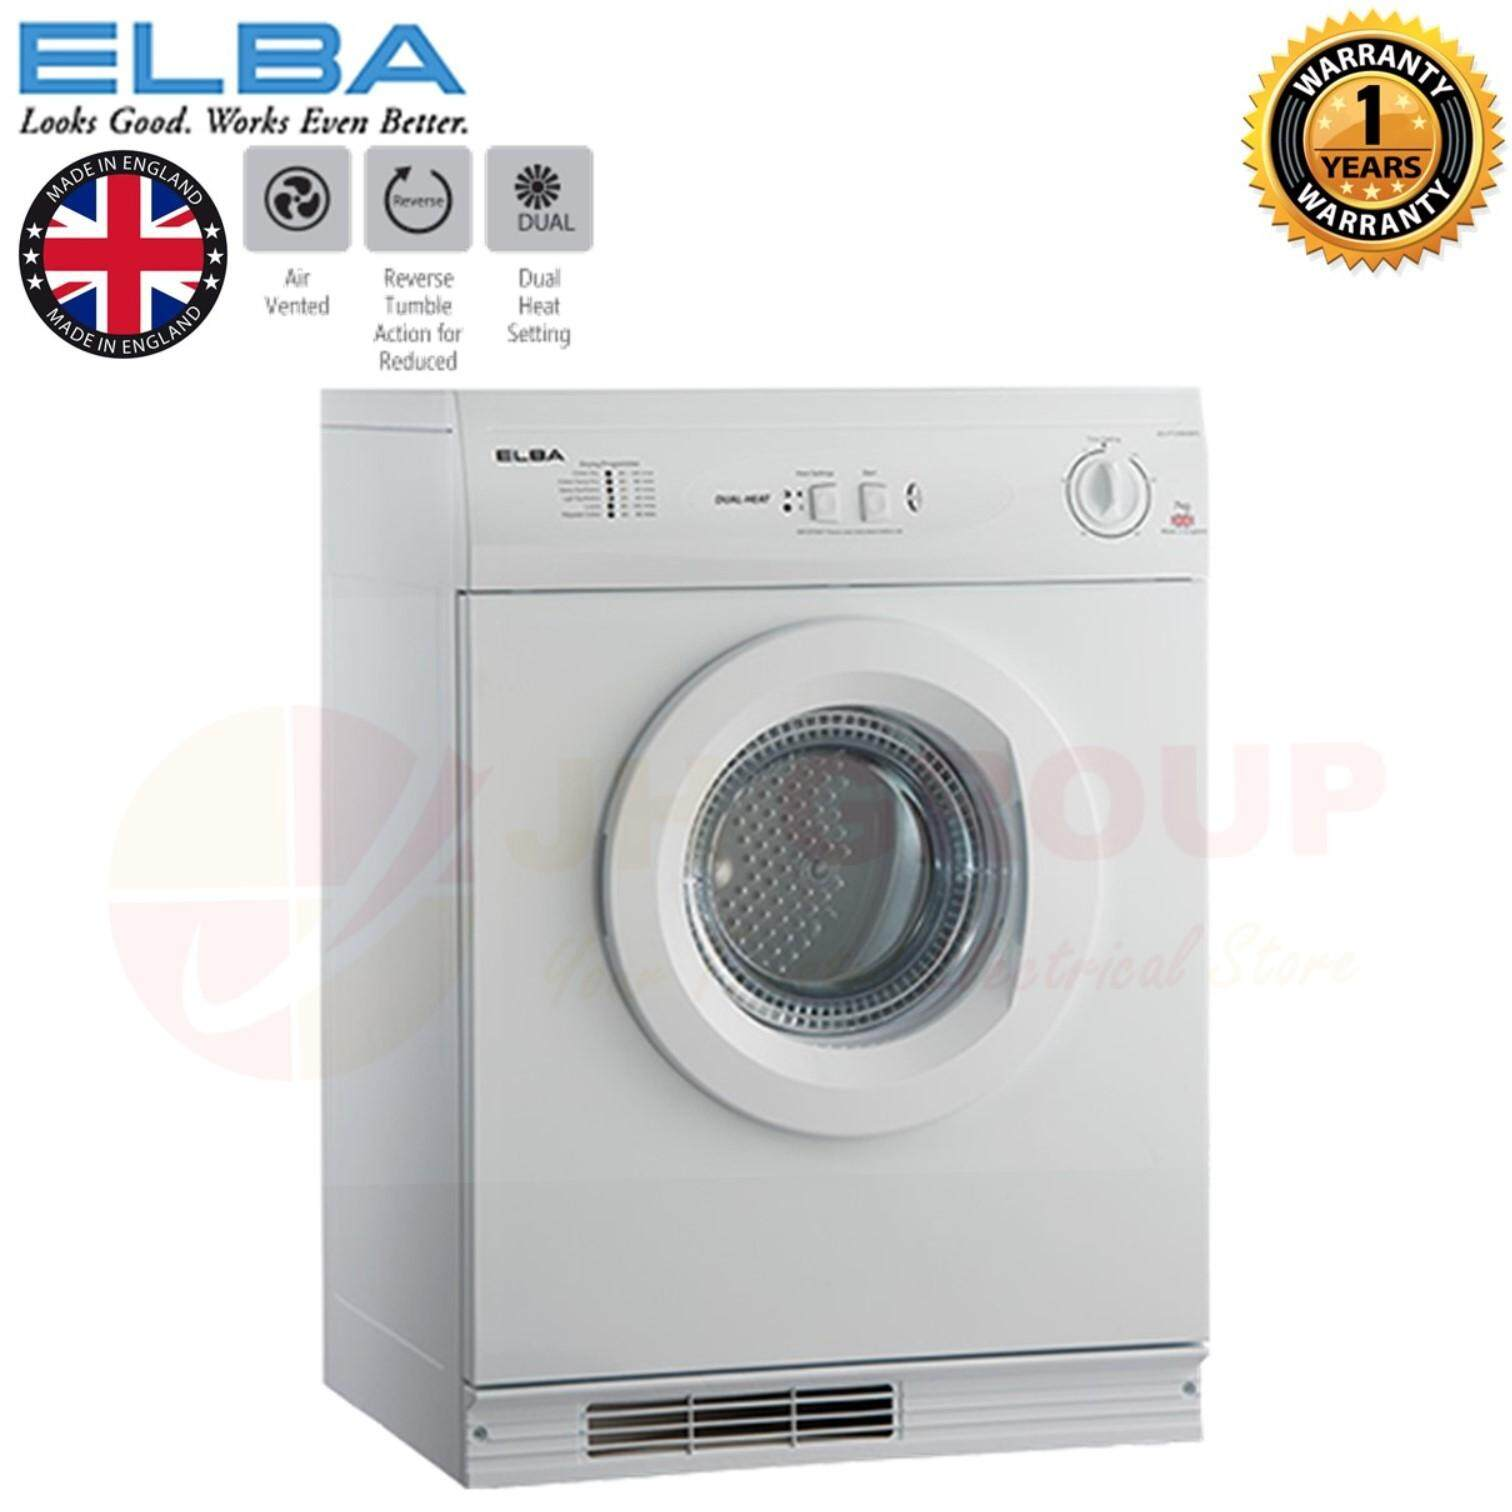 (MADE IN ENGLAND) ELBA ED-F7209(WH) 7KG AIR VENTED TUMBLE DRYER *SIMILAR EDV7552